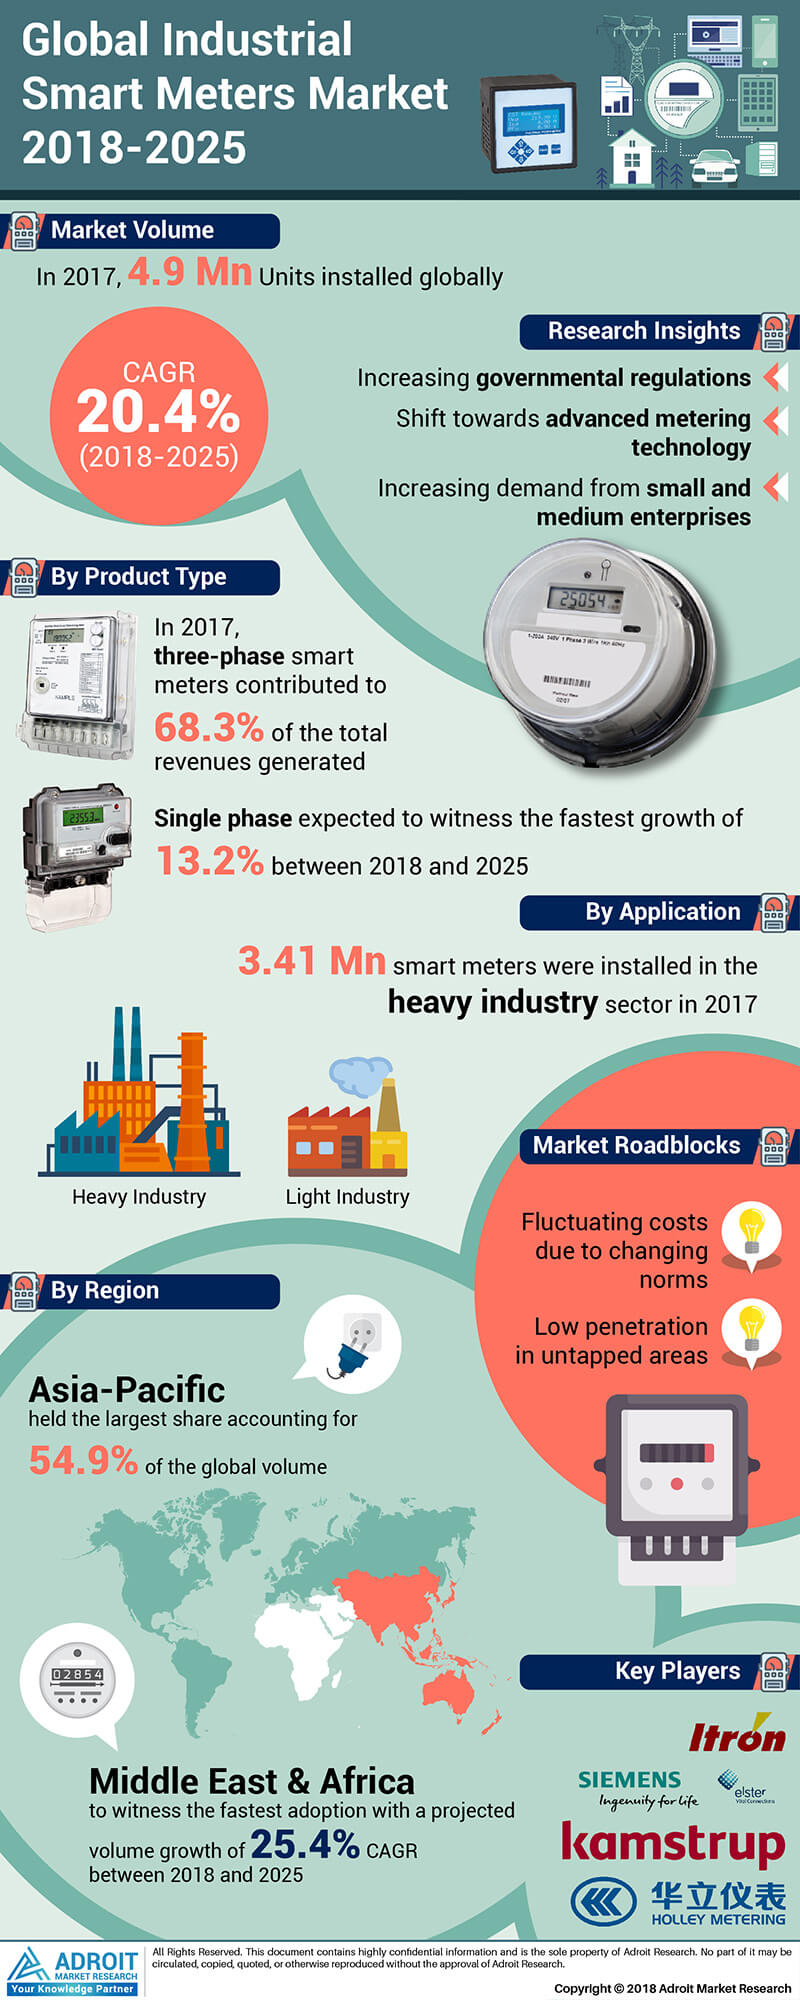 Global Industrial Smart Meters Market Size by Type, Application, Region and Forecast 2018 to 2025